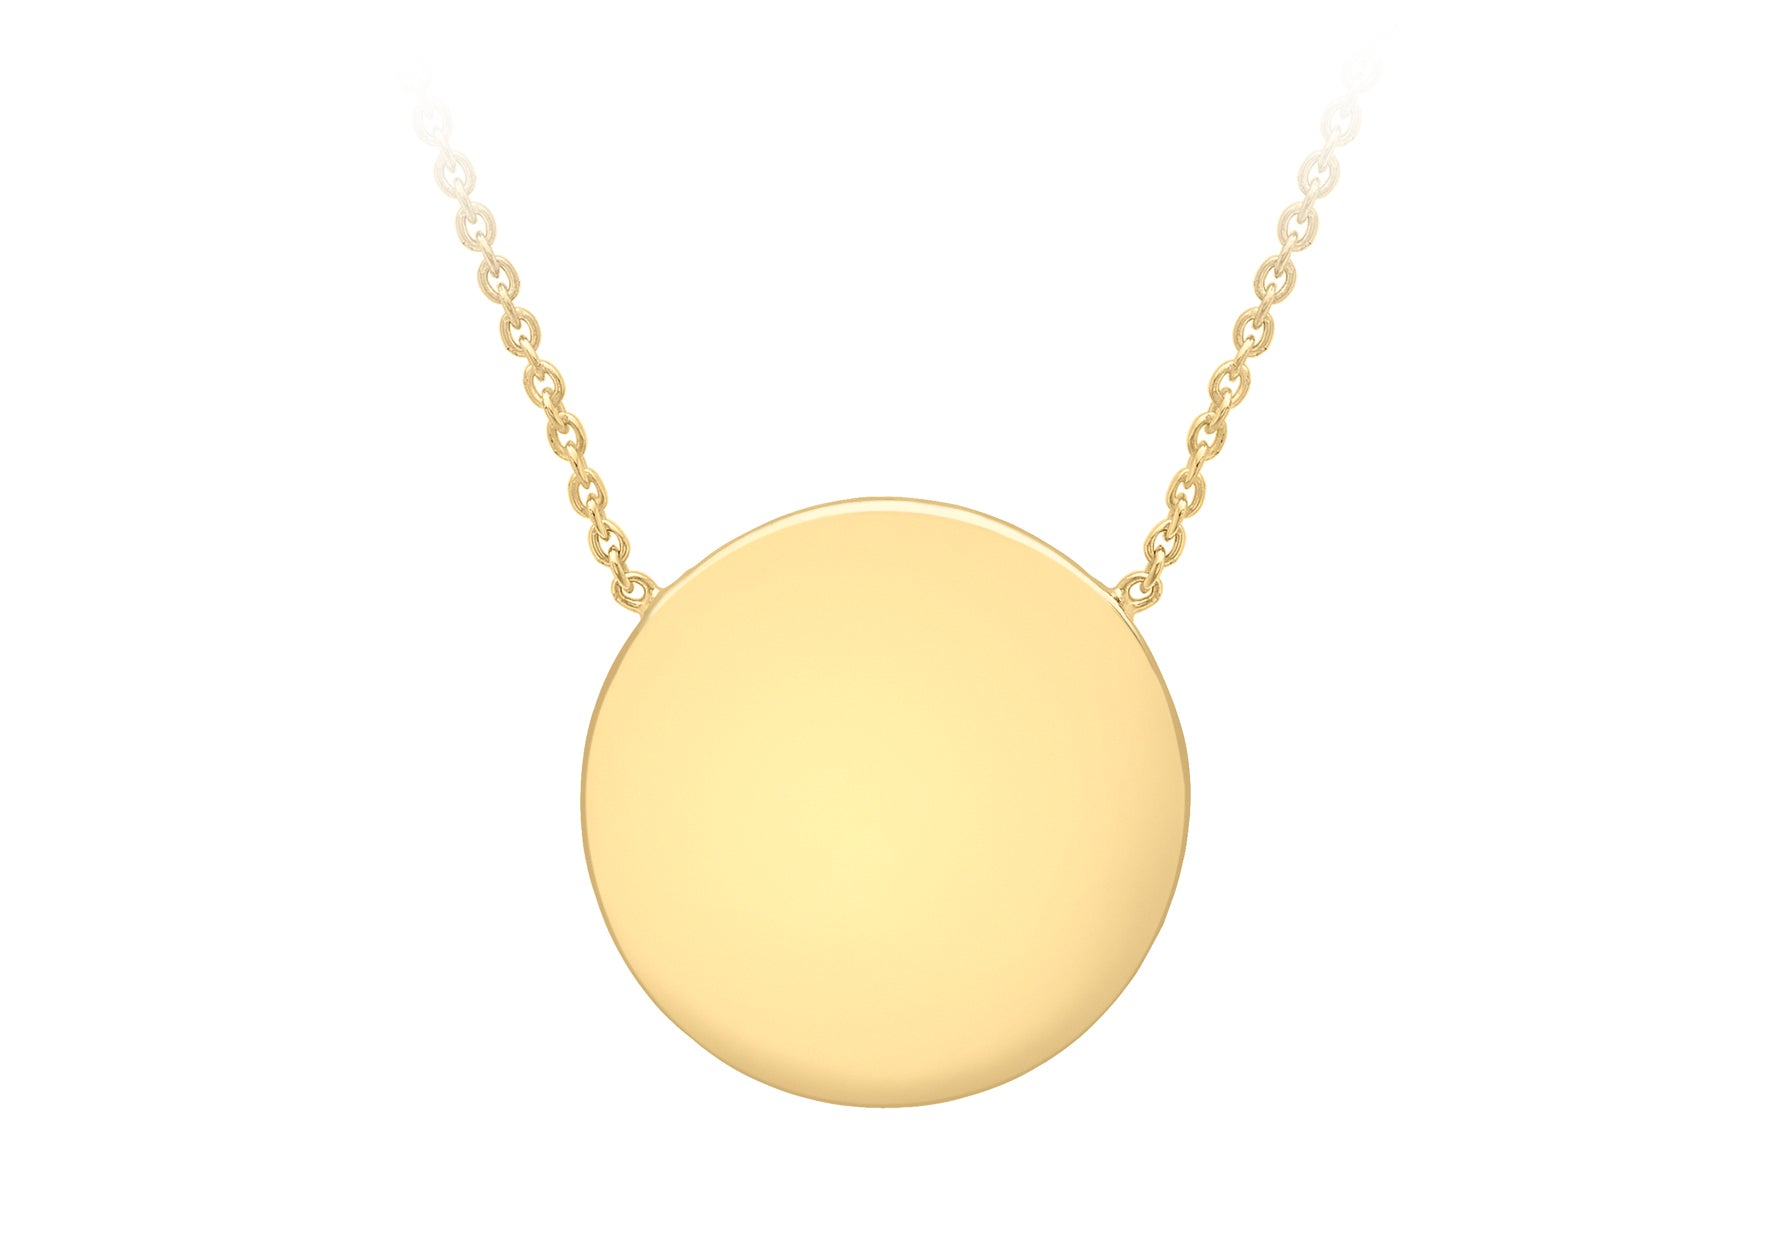 9ct Yellow Gold plain disc with chain